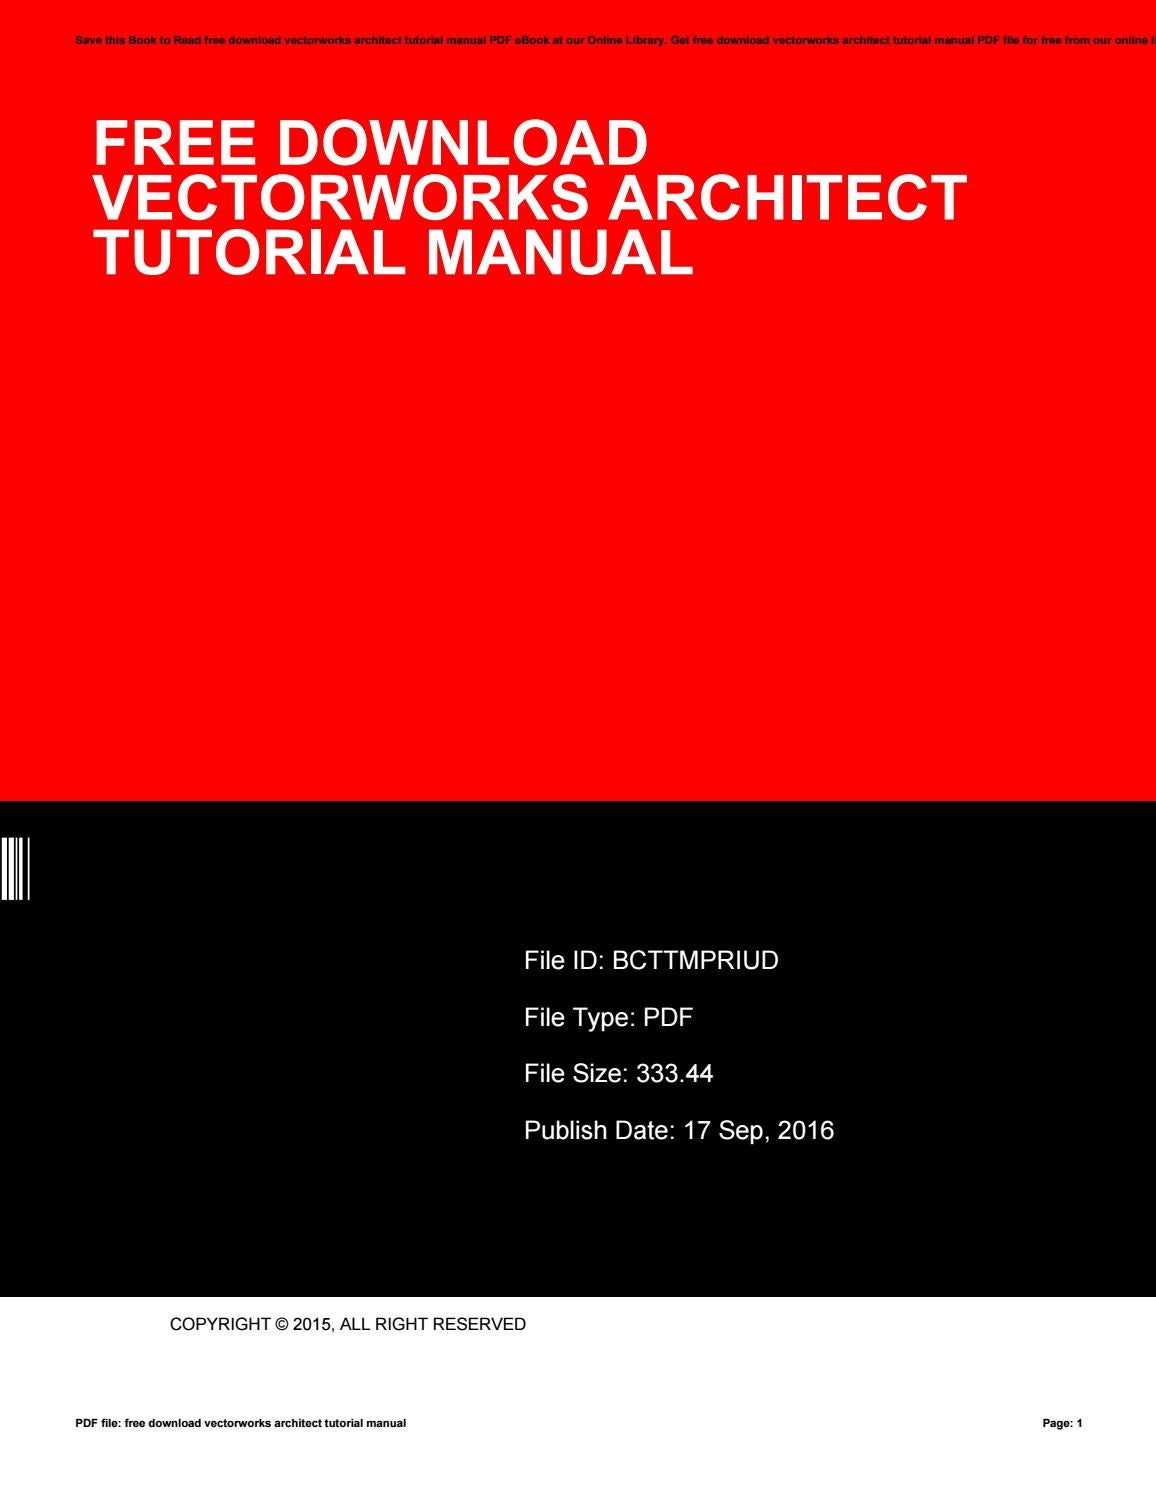 Free download vectorworks architect tutorial manual by RobinBrooks1672 -  issuu